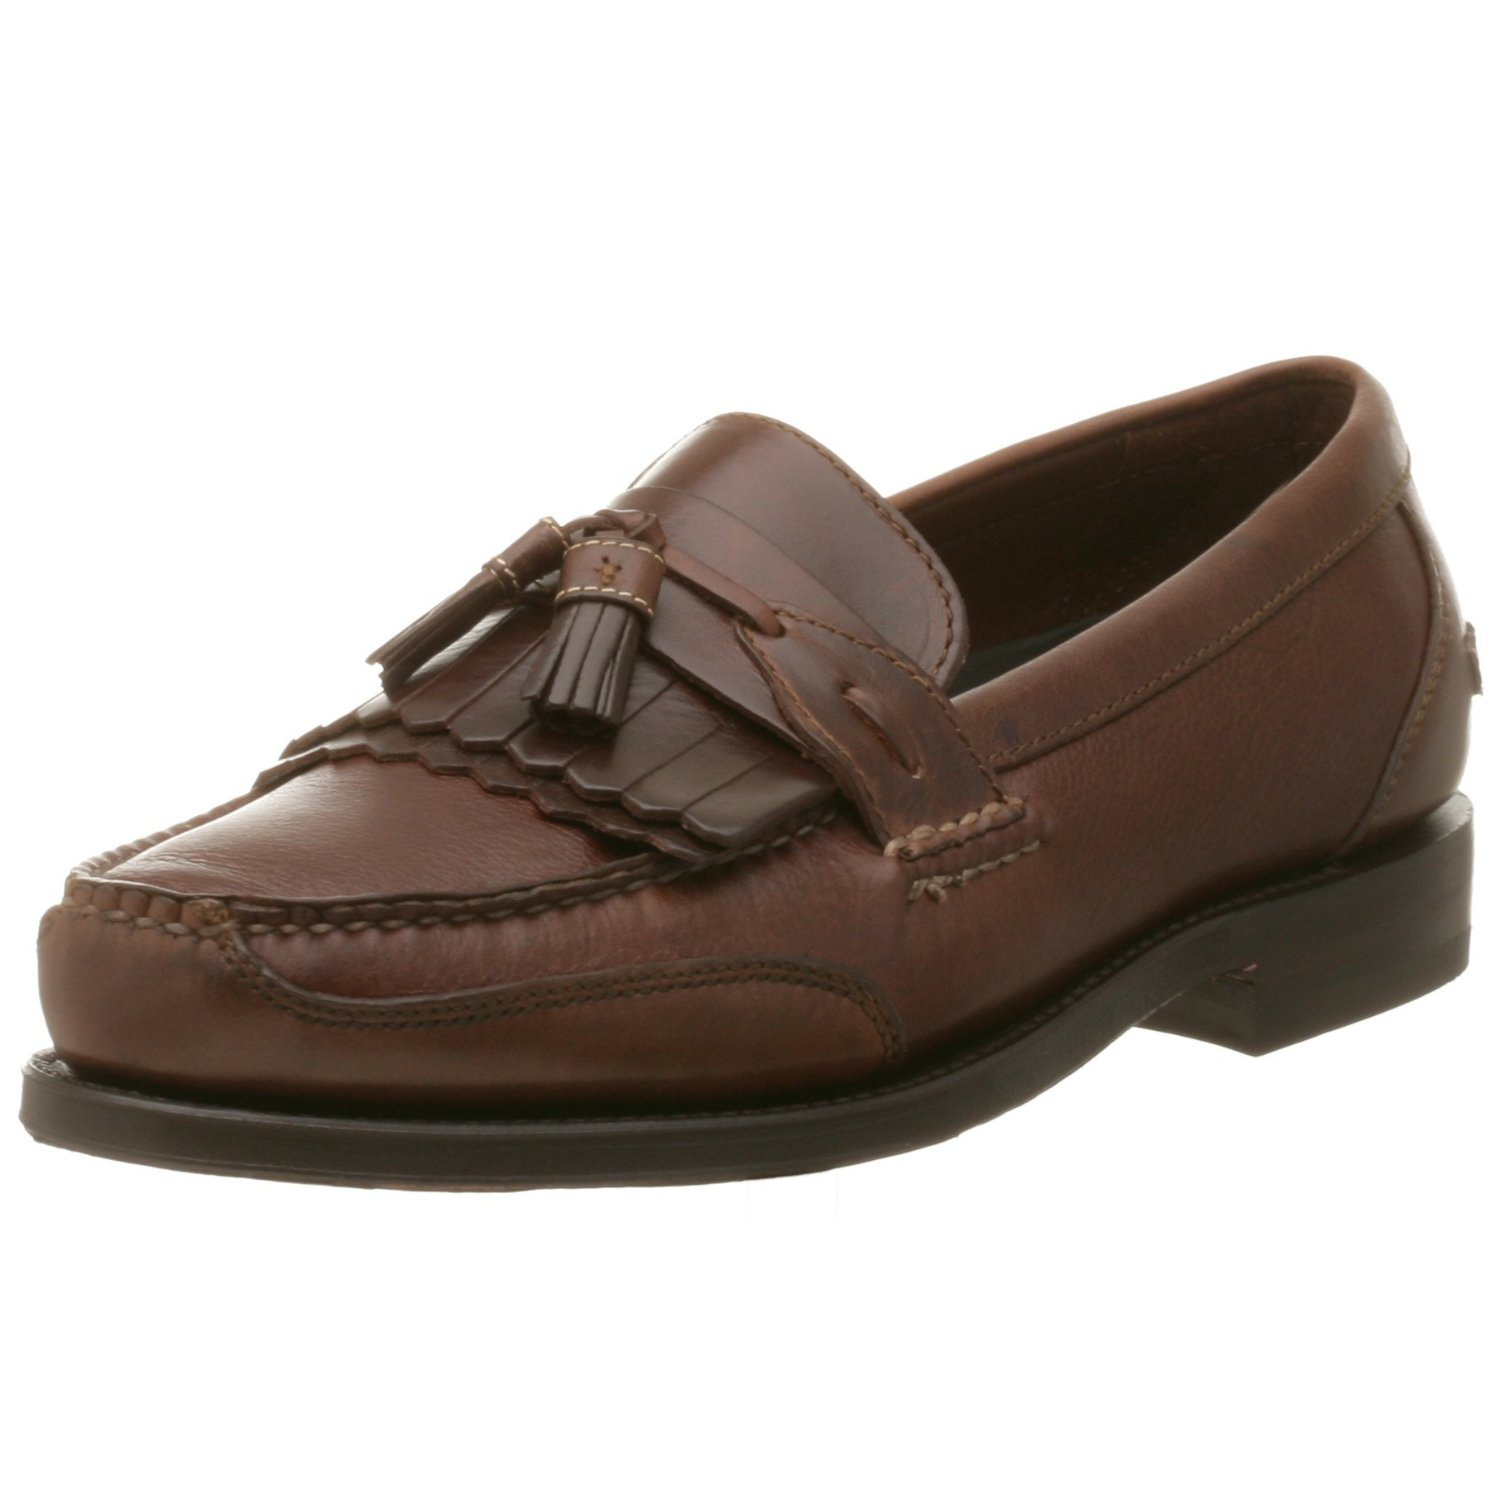 Slip into our attractive Cole Haan men's shoes made with quality craftsmanship and the finest materials! Houser Shoes has a large selection of discounted footwear for men in our online store. Start saving!, Price $ and above.